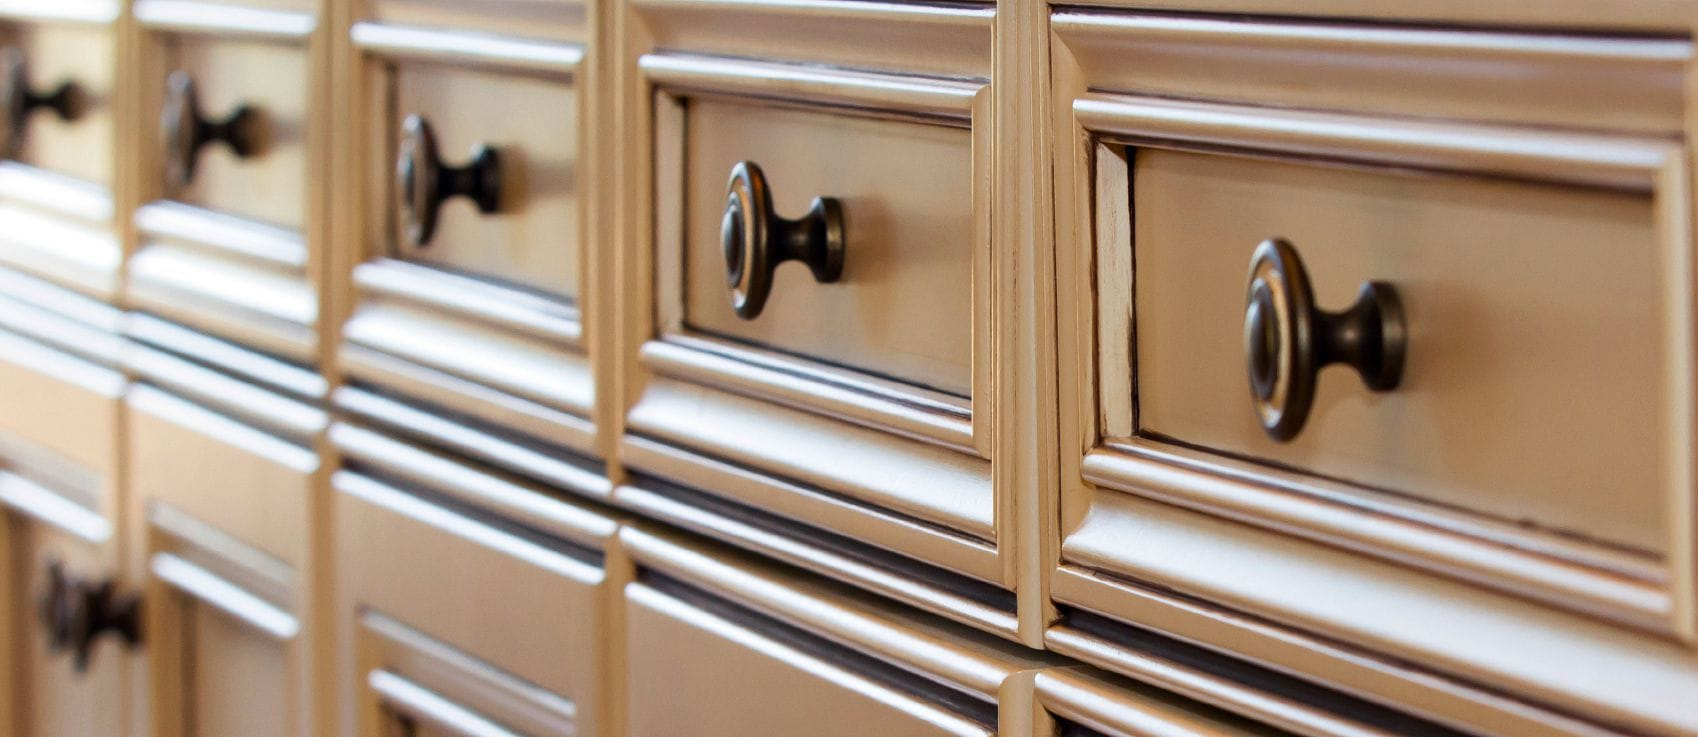 spotlight on cabinet knobs pulls and handles kitchen cabinet hardware Row of kitchen cabinet drawer fronts